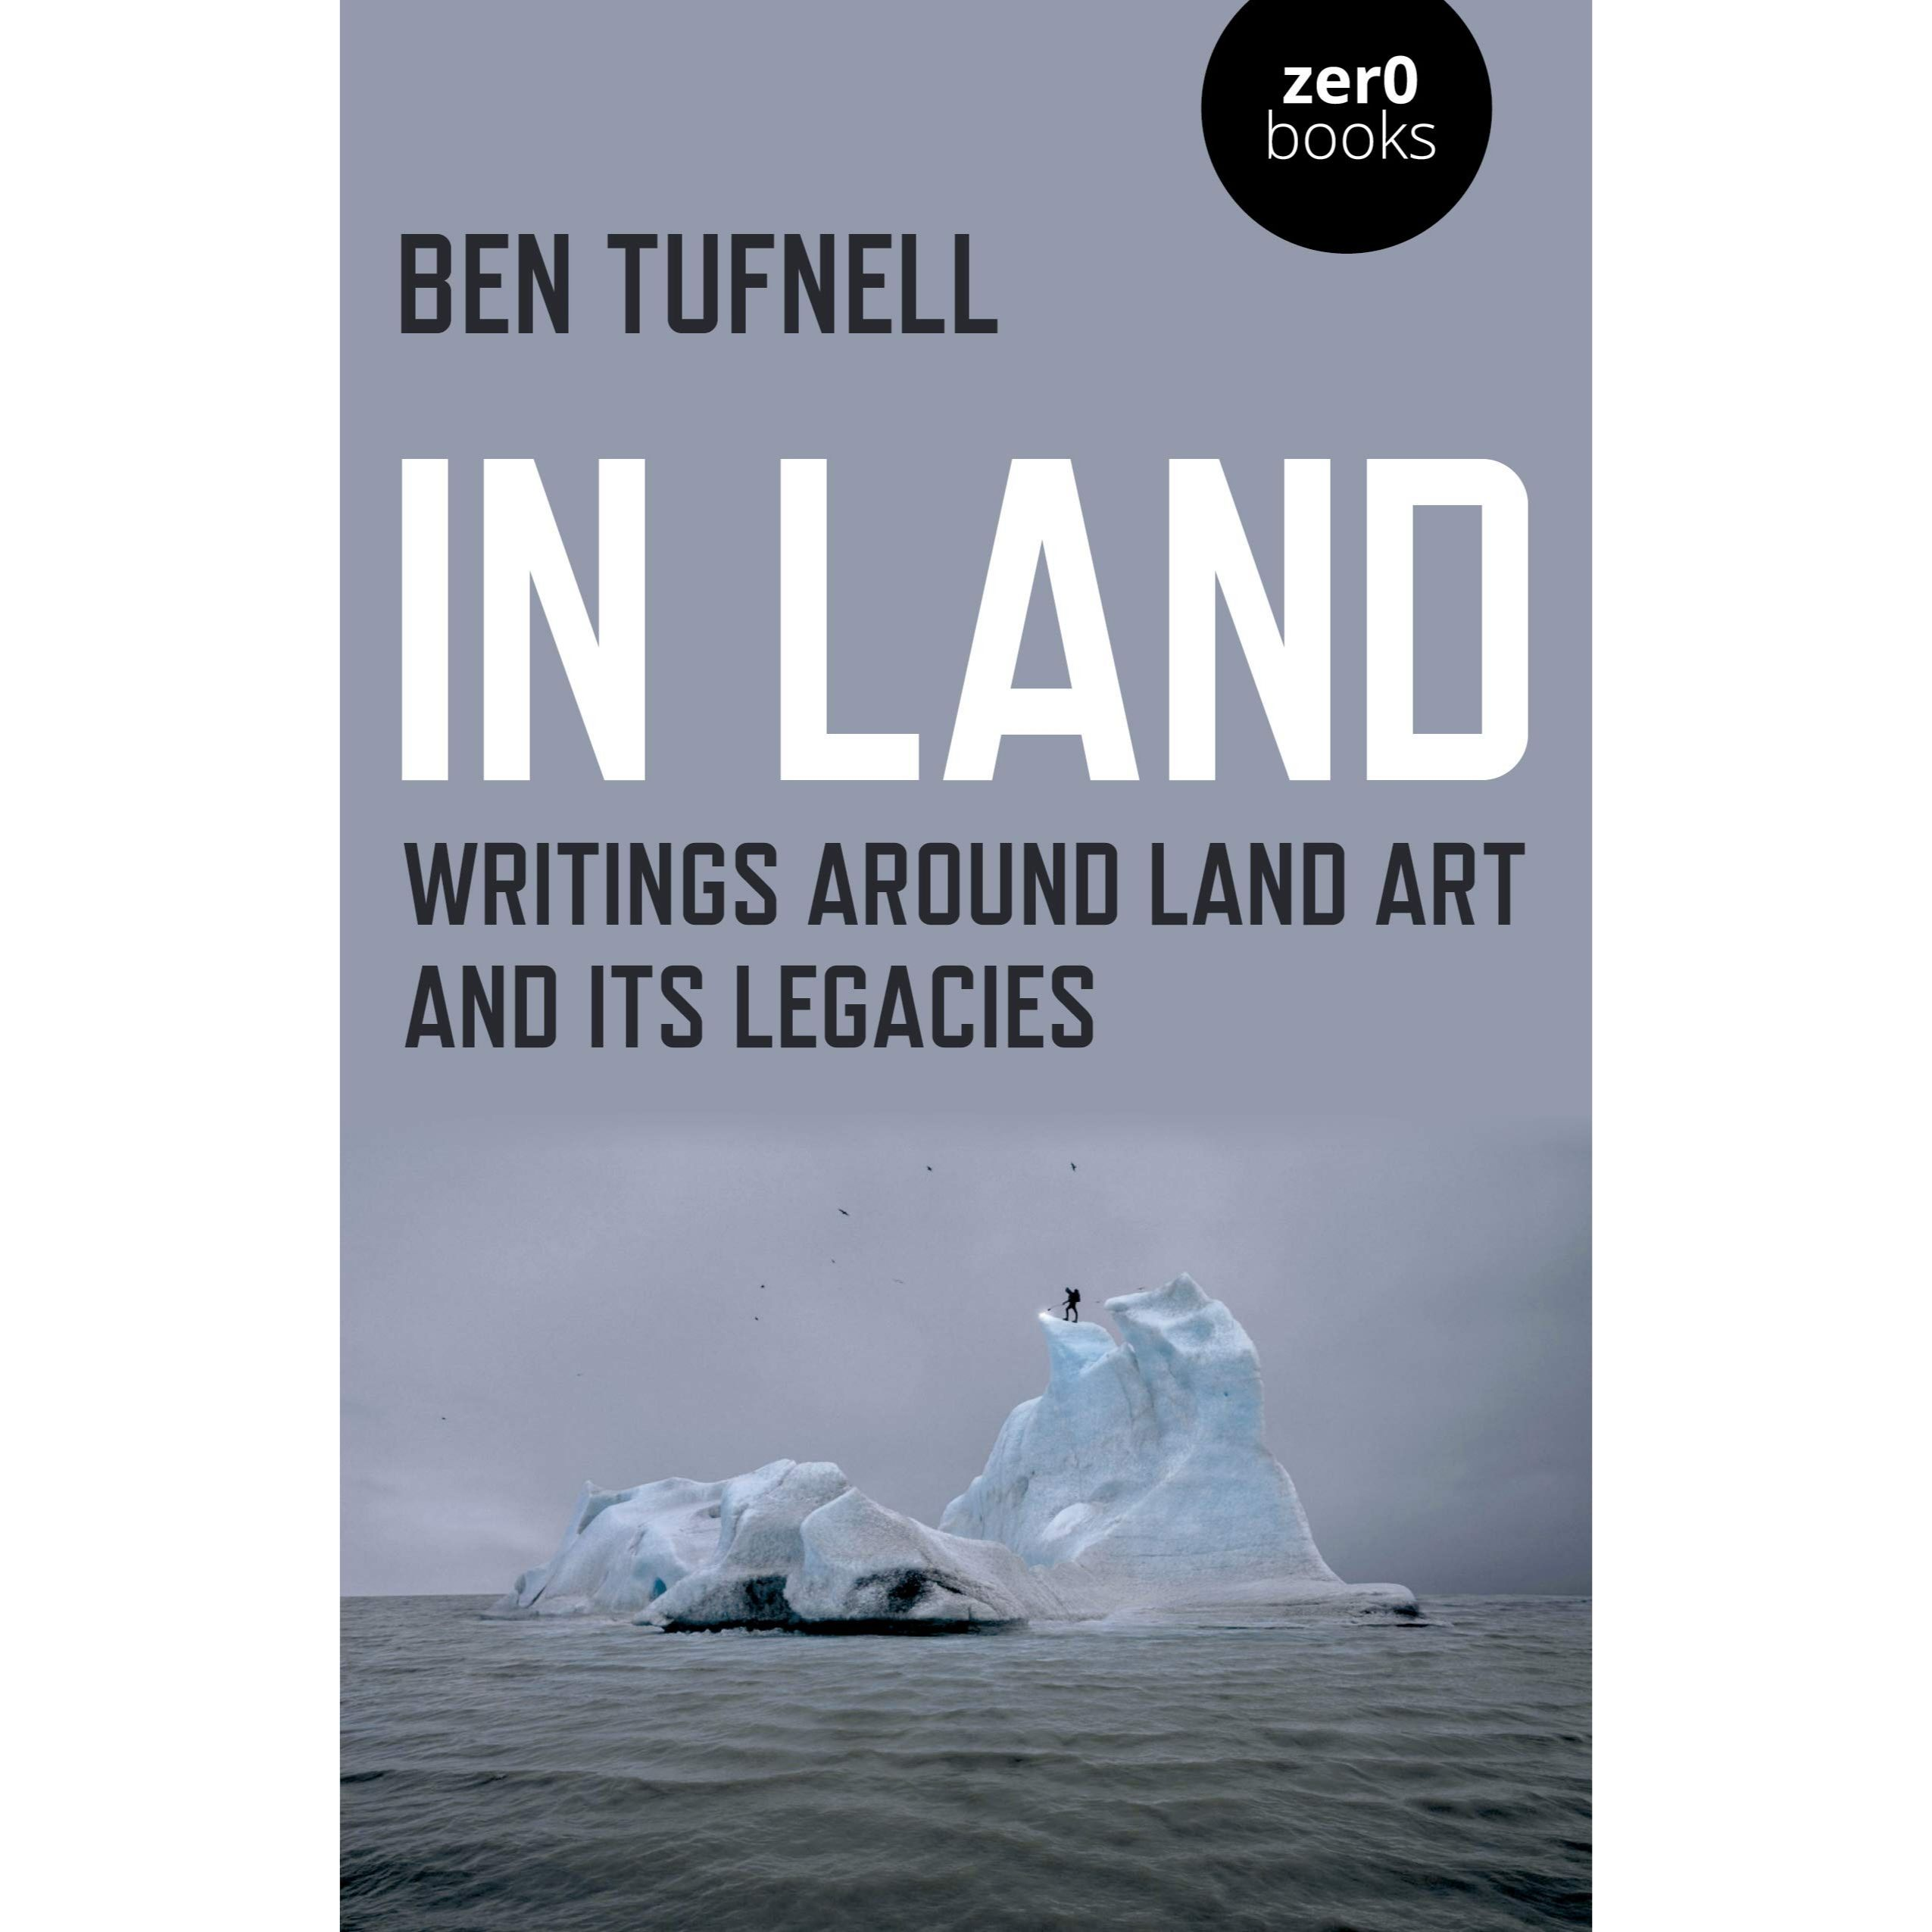 In Land: Writings around Land Art and its Legacies by Ben Tufnell